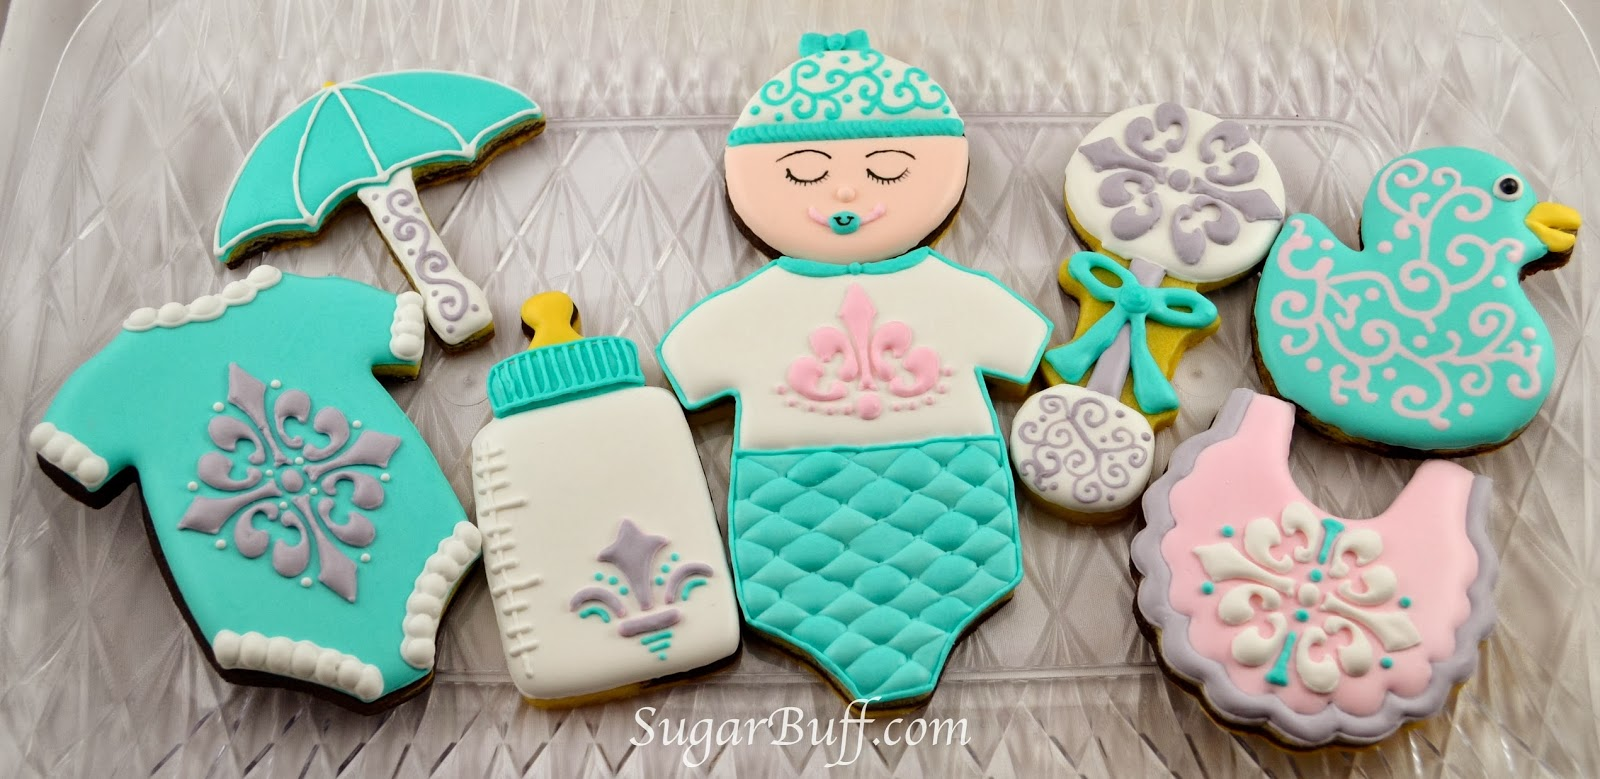 Damask Baby Shower Cookies     Sugar Buff Bake Shop I don t use a lot of tools that would make my cookie decorating easier  I  dream about having a KopyKake projector  an airbrush  an abundance of  stencils and